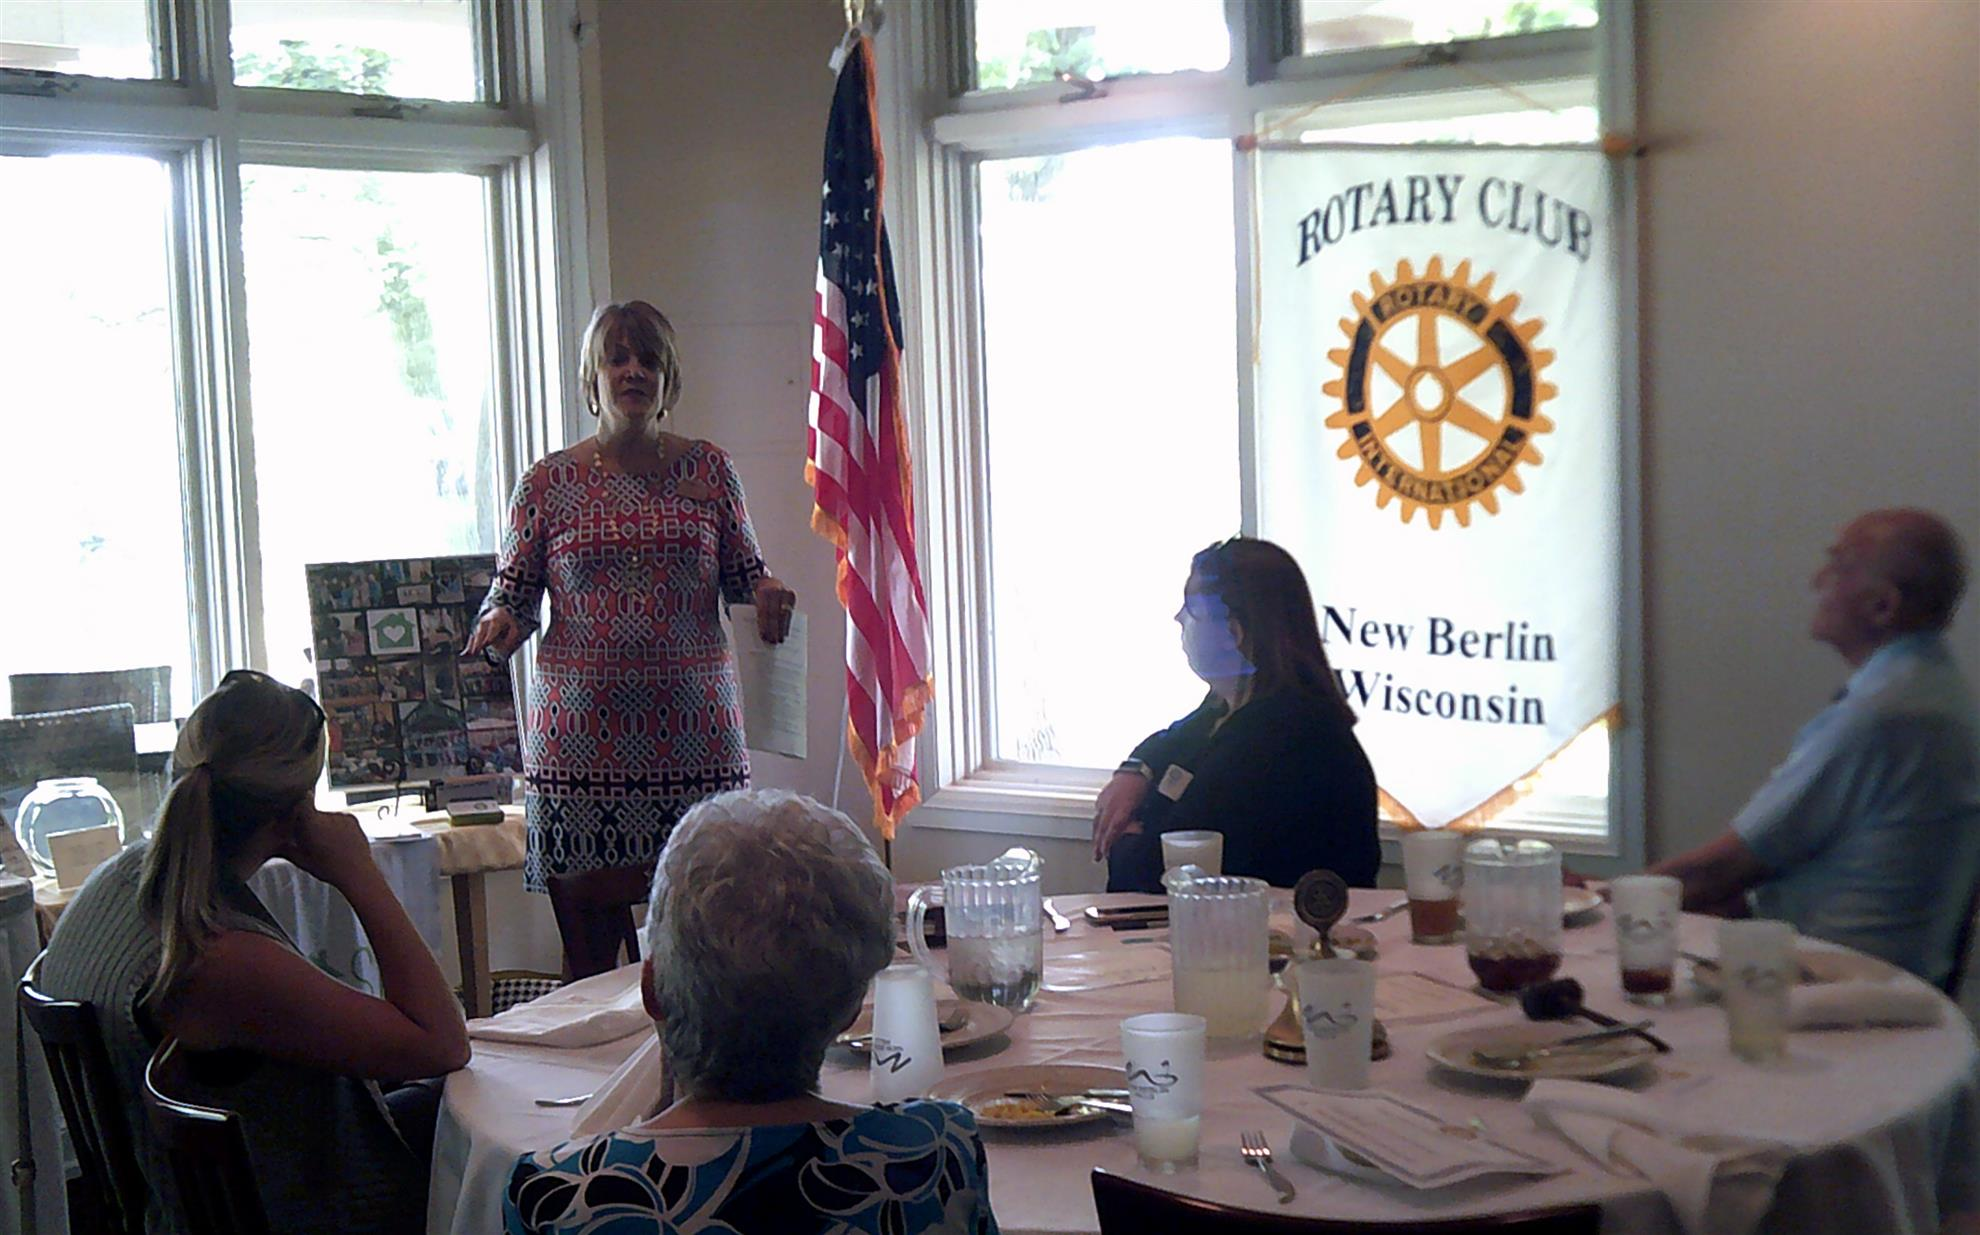 Rotary Club of New Berlin, New Berlin Rotary, Karen Schlindwein